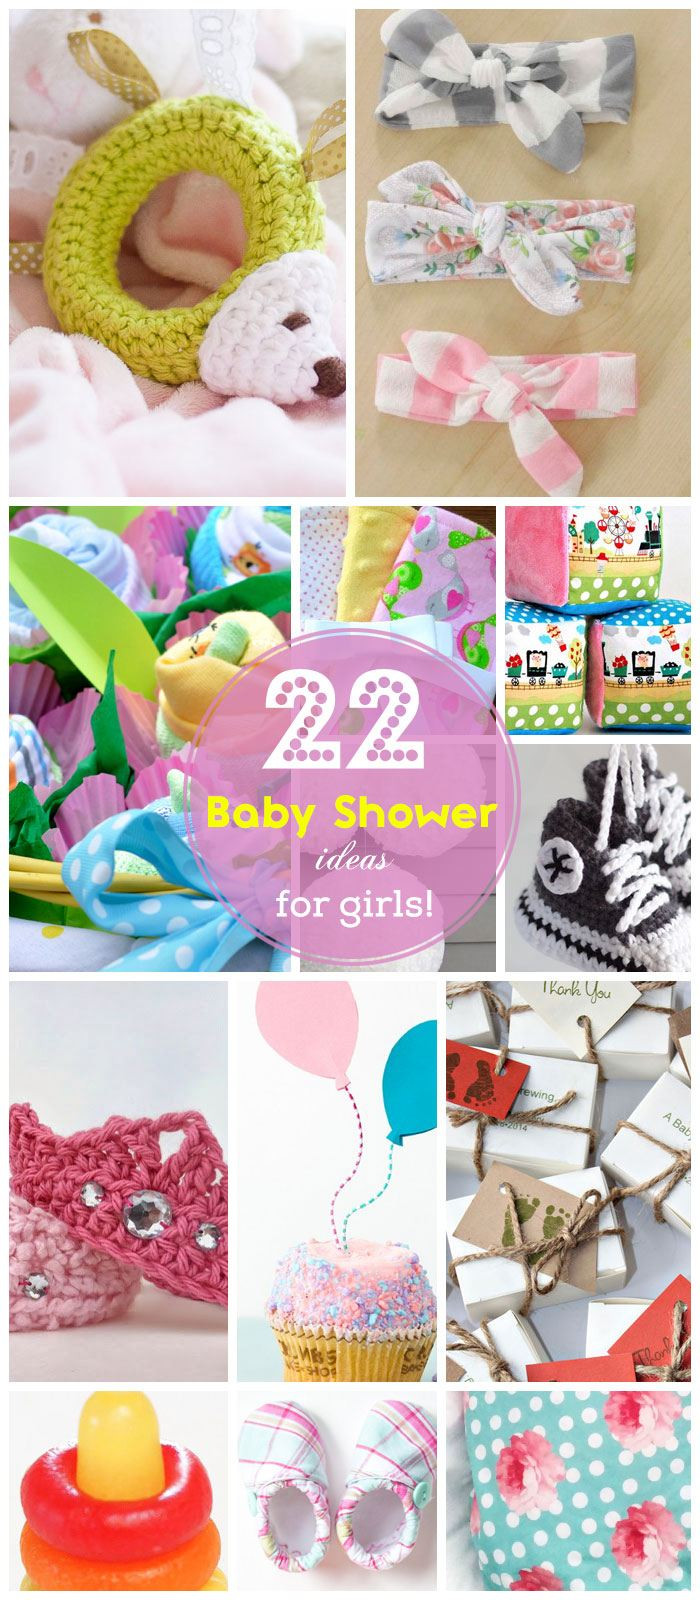 Best ideas about Baby Shower DIY Ideas . Save or Pin 55 Easy Baby Shower Ideas for Girls Now.